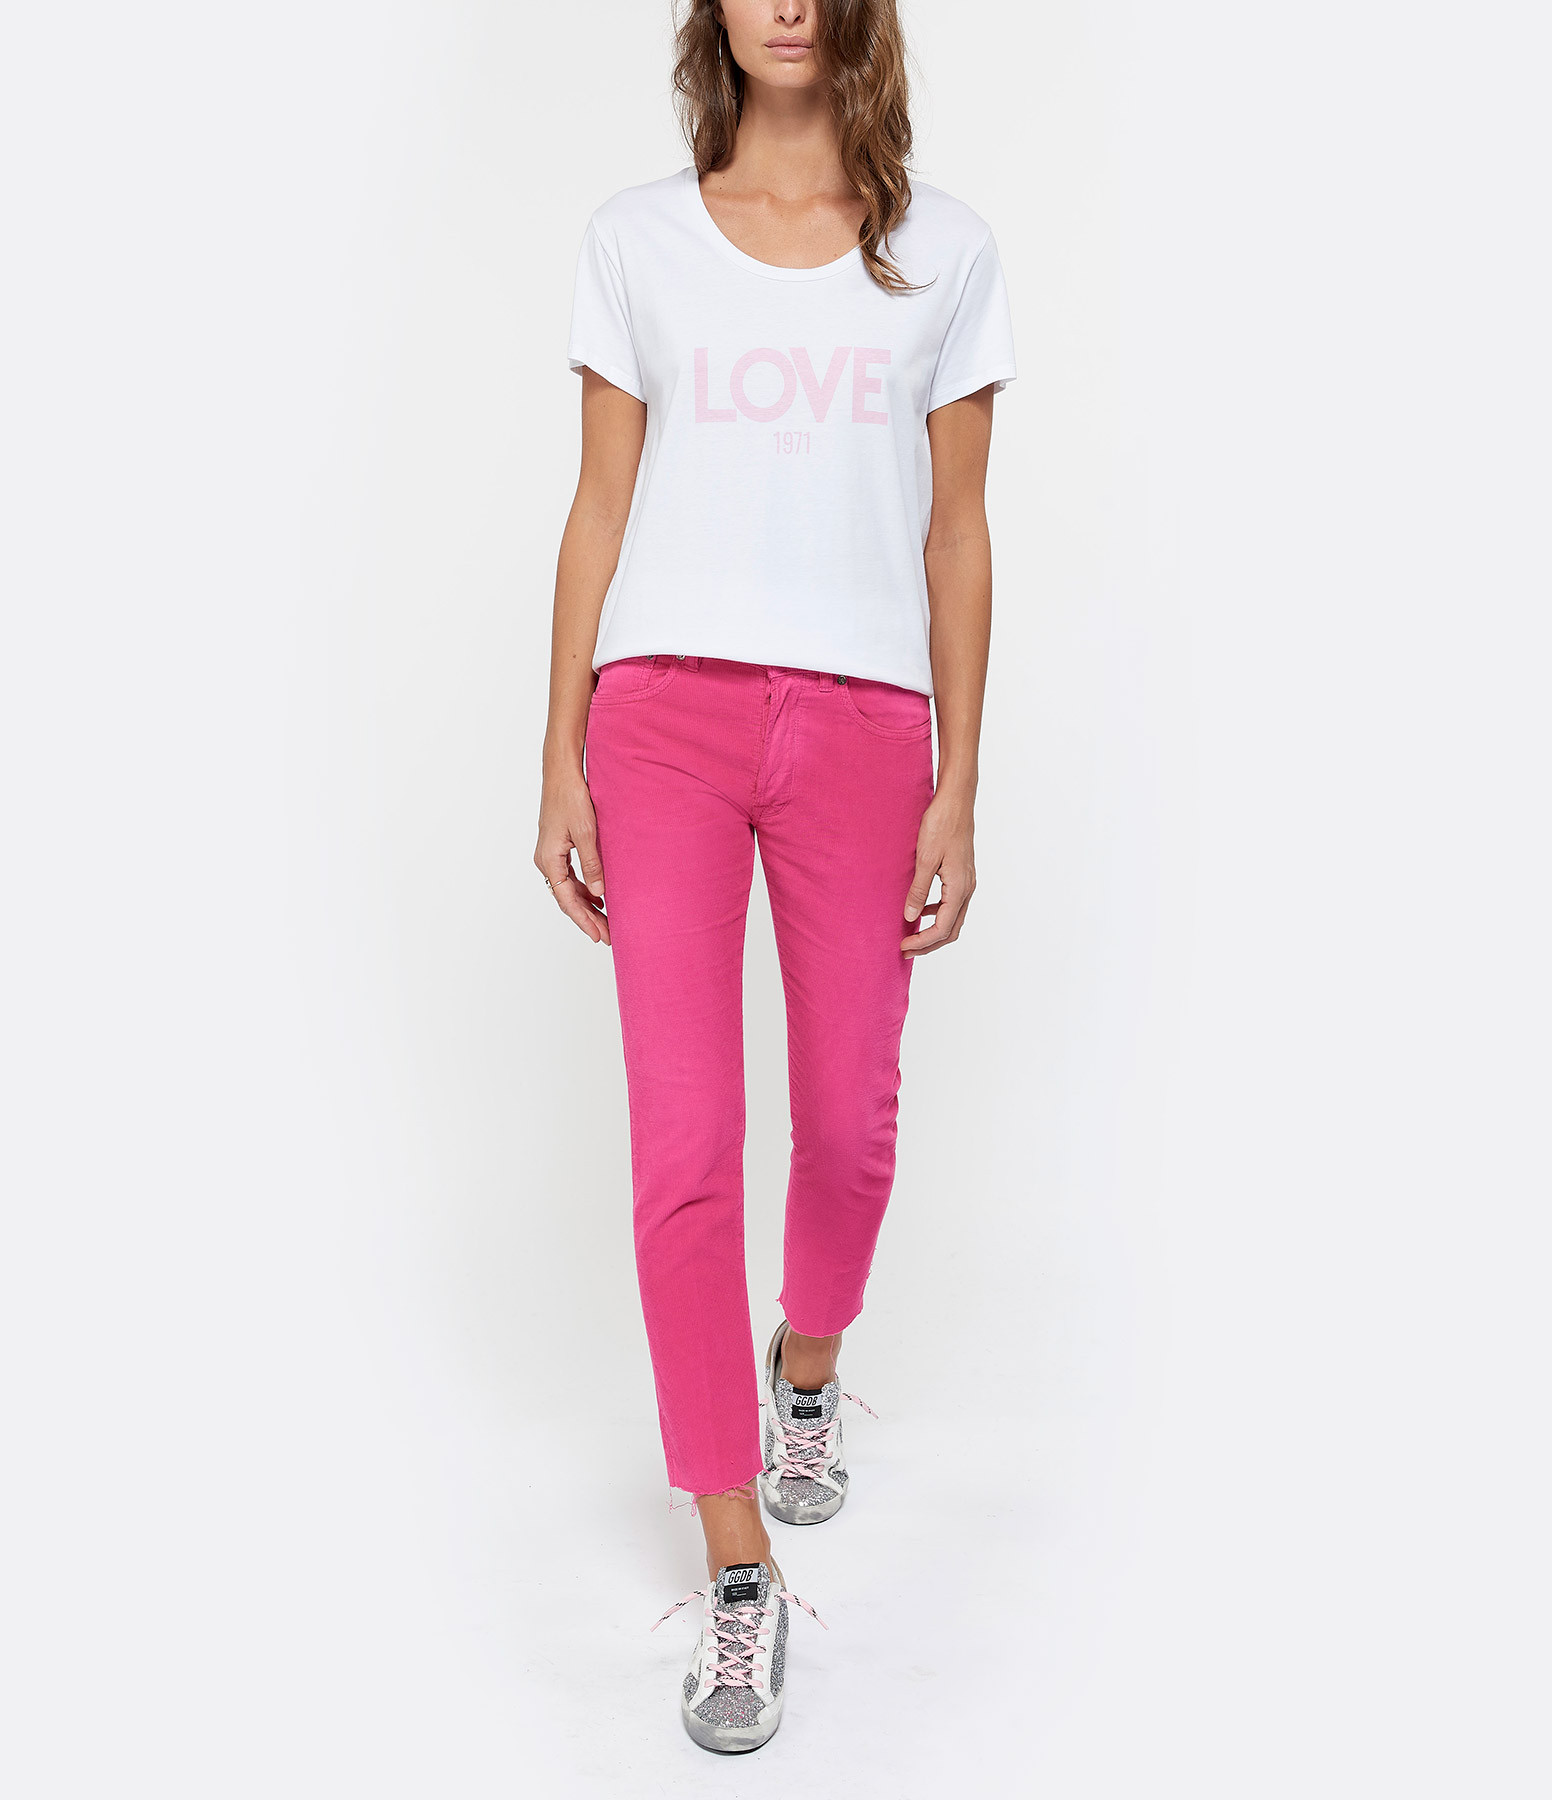 JEANNE VOULAND - Tee-shirt Ben Love 1971 Coton Blanc Rose